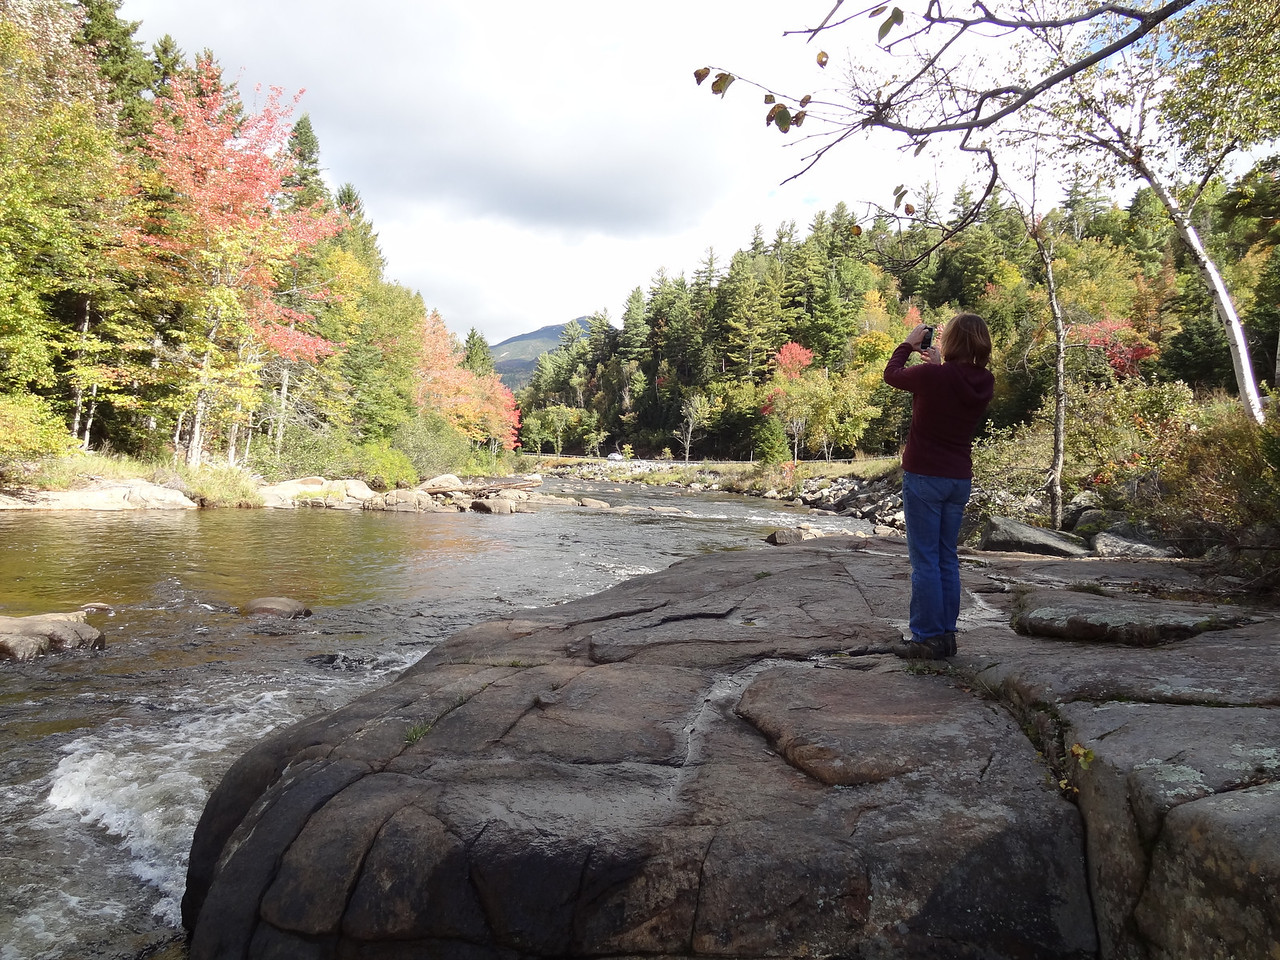 Downstream, you can see Whiteface mountain: home to the 1932 and 1980 Olympic ski events.